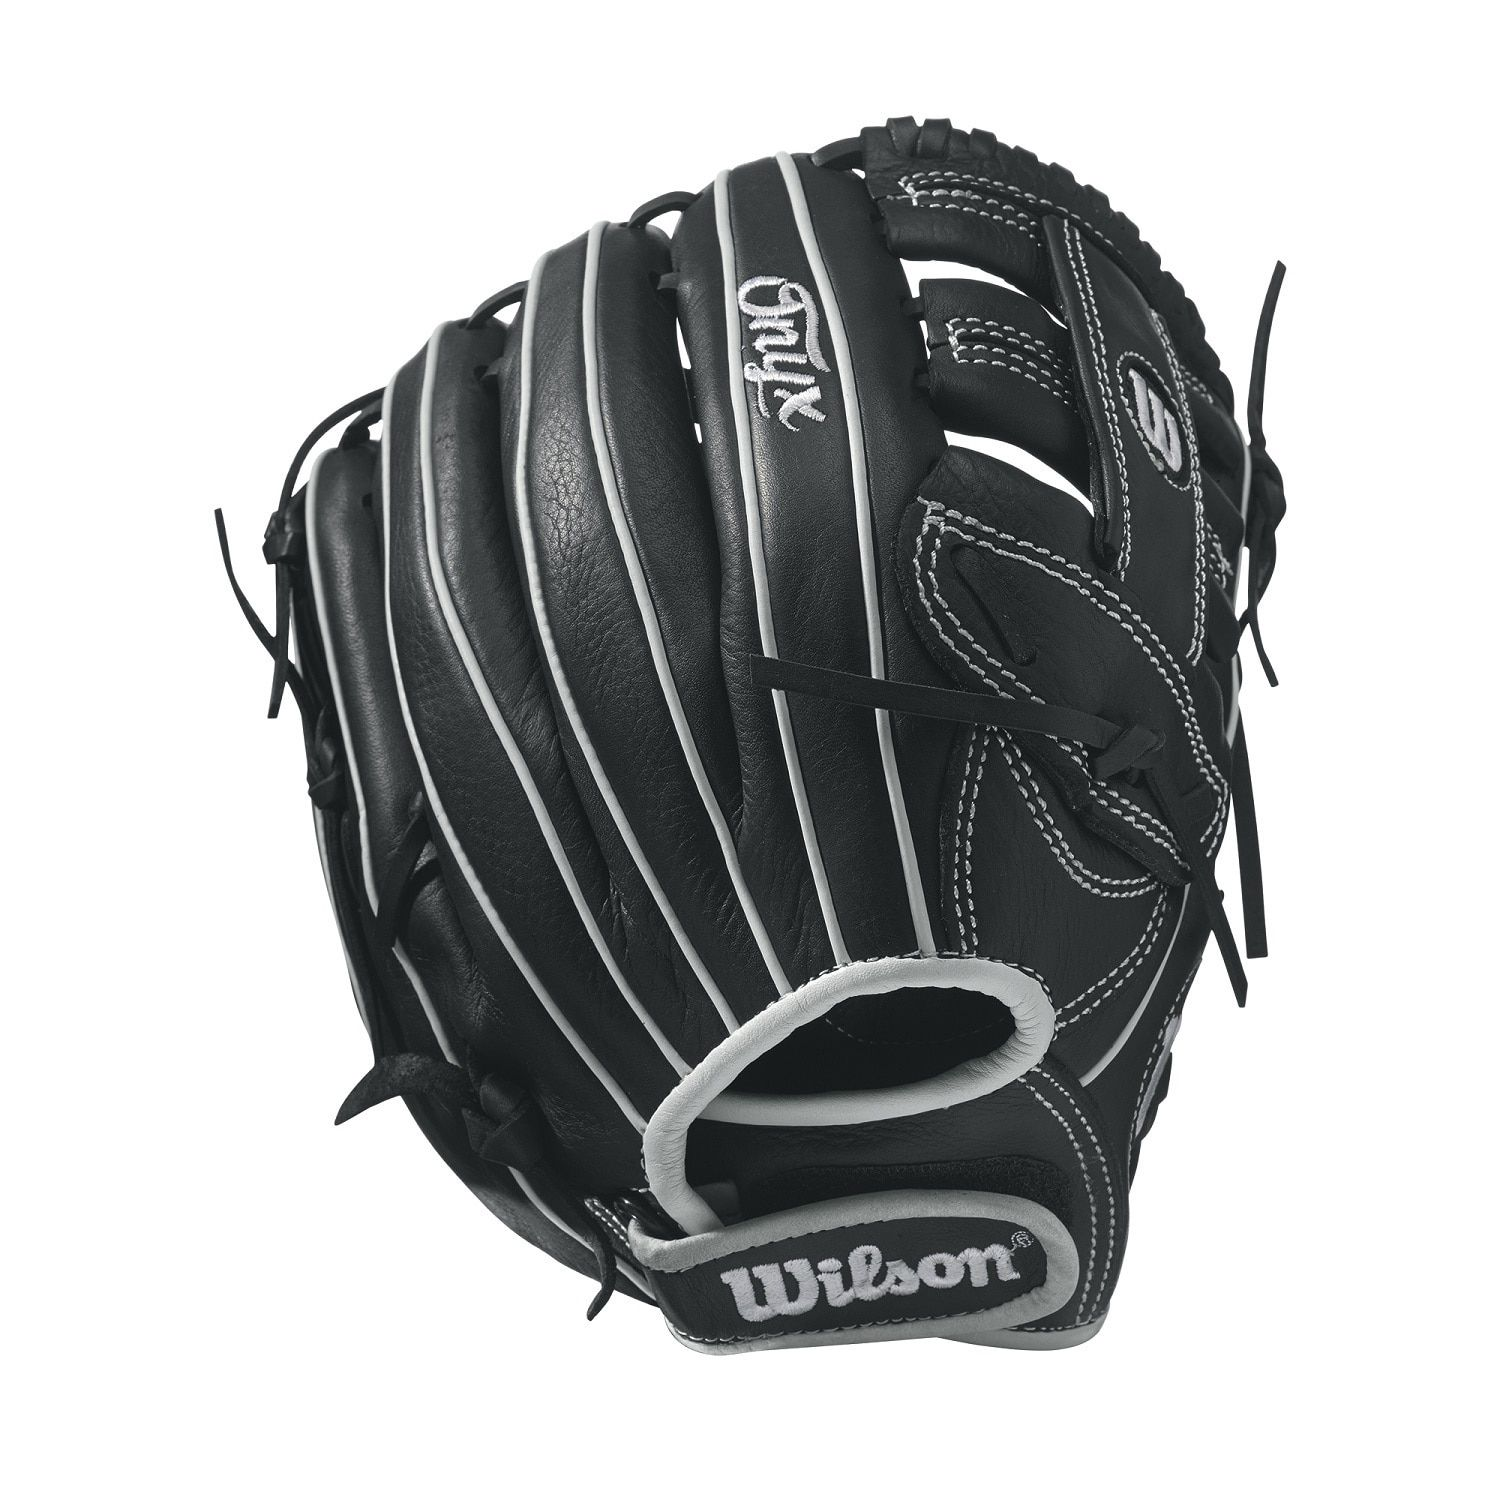 Wilson yx Fastpitch 11 75 inch Right handed Softball Infield Glove